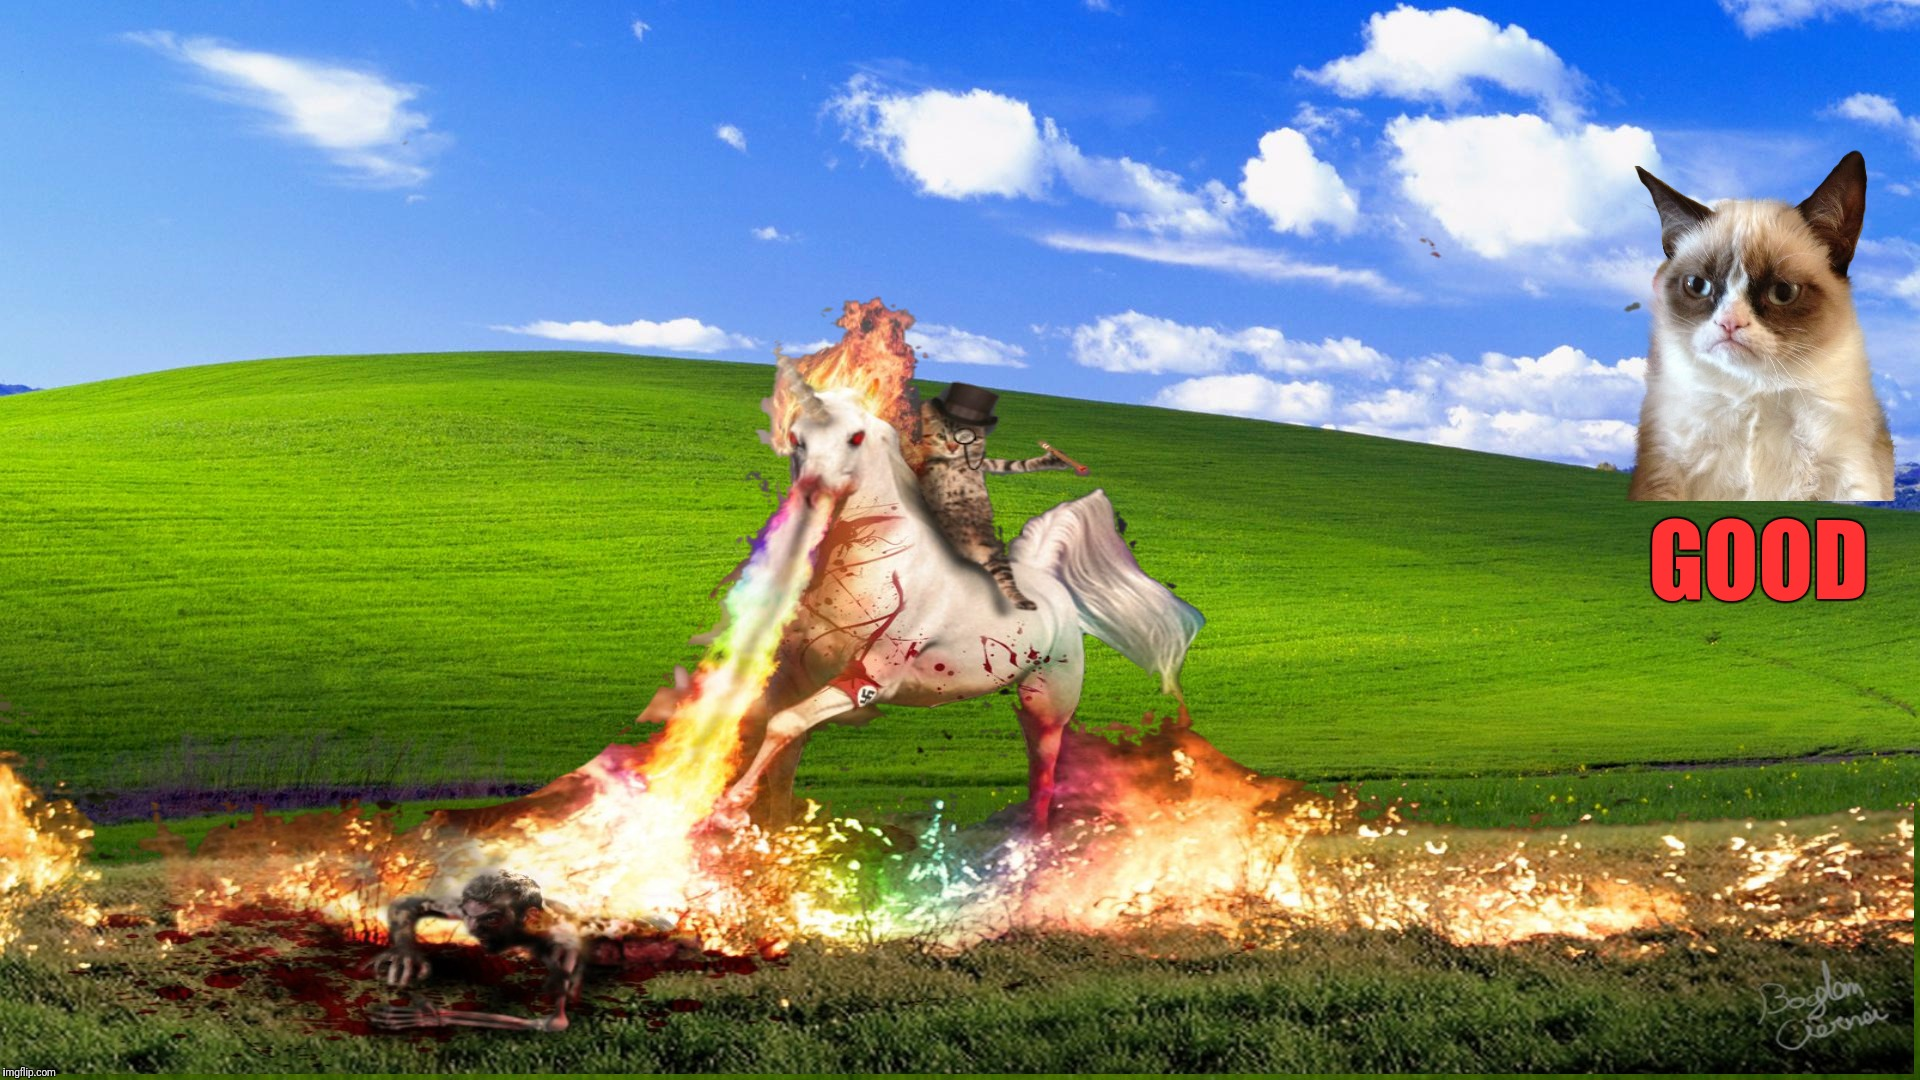 Microsoft has hired Grumpy Cat and his team to retire all remaining XP users | GOOD | image tagged in memes,grumpy cat,cat riding unicorn,microsoft,you should have upgraded when you had the chance | made w/ Imgflip meme maker